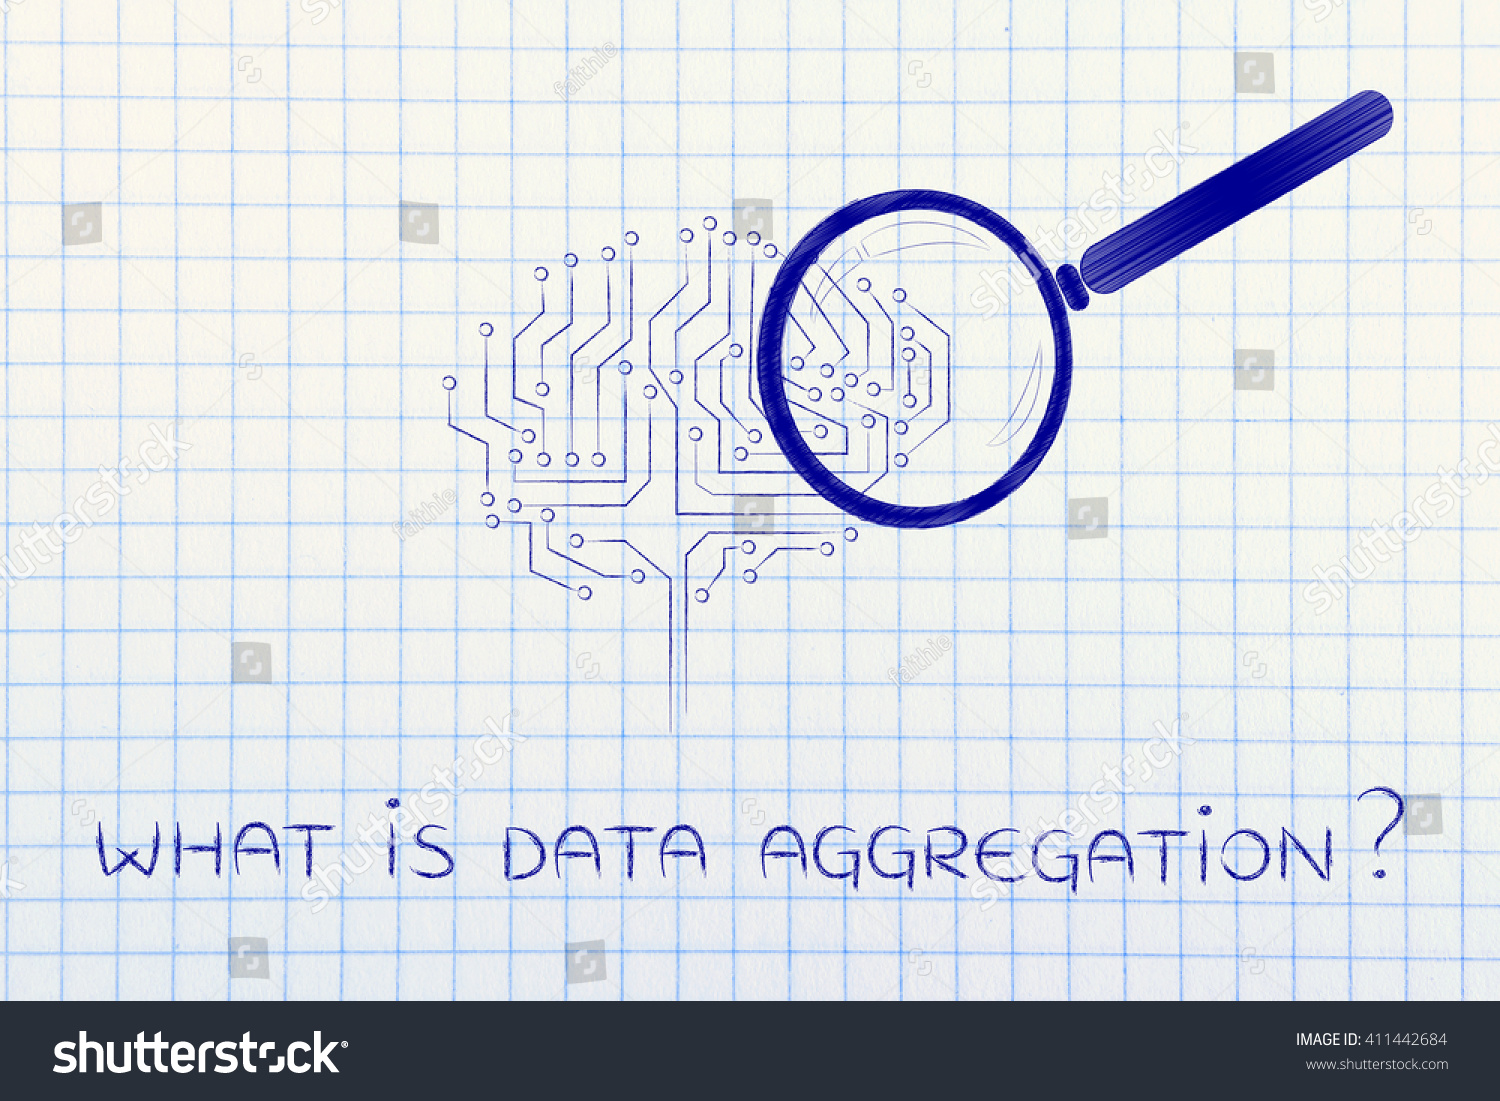 What Data Aggregation Magnifying Glass Analyzing Stock Illustration Are Electronic Circuit Is An Brain